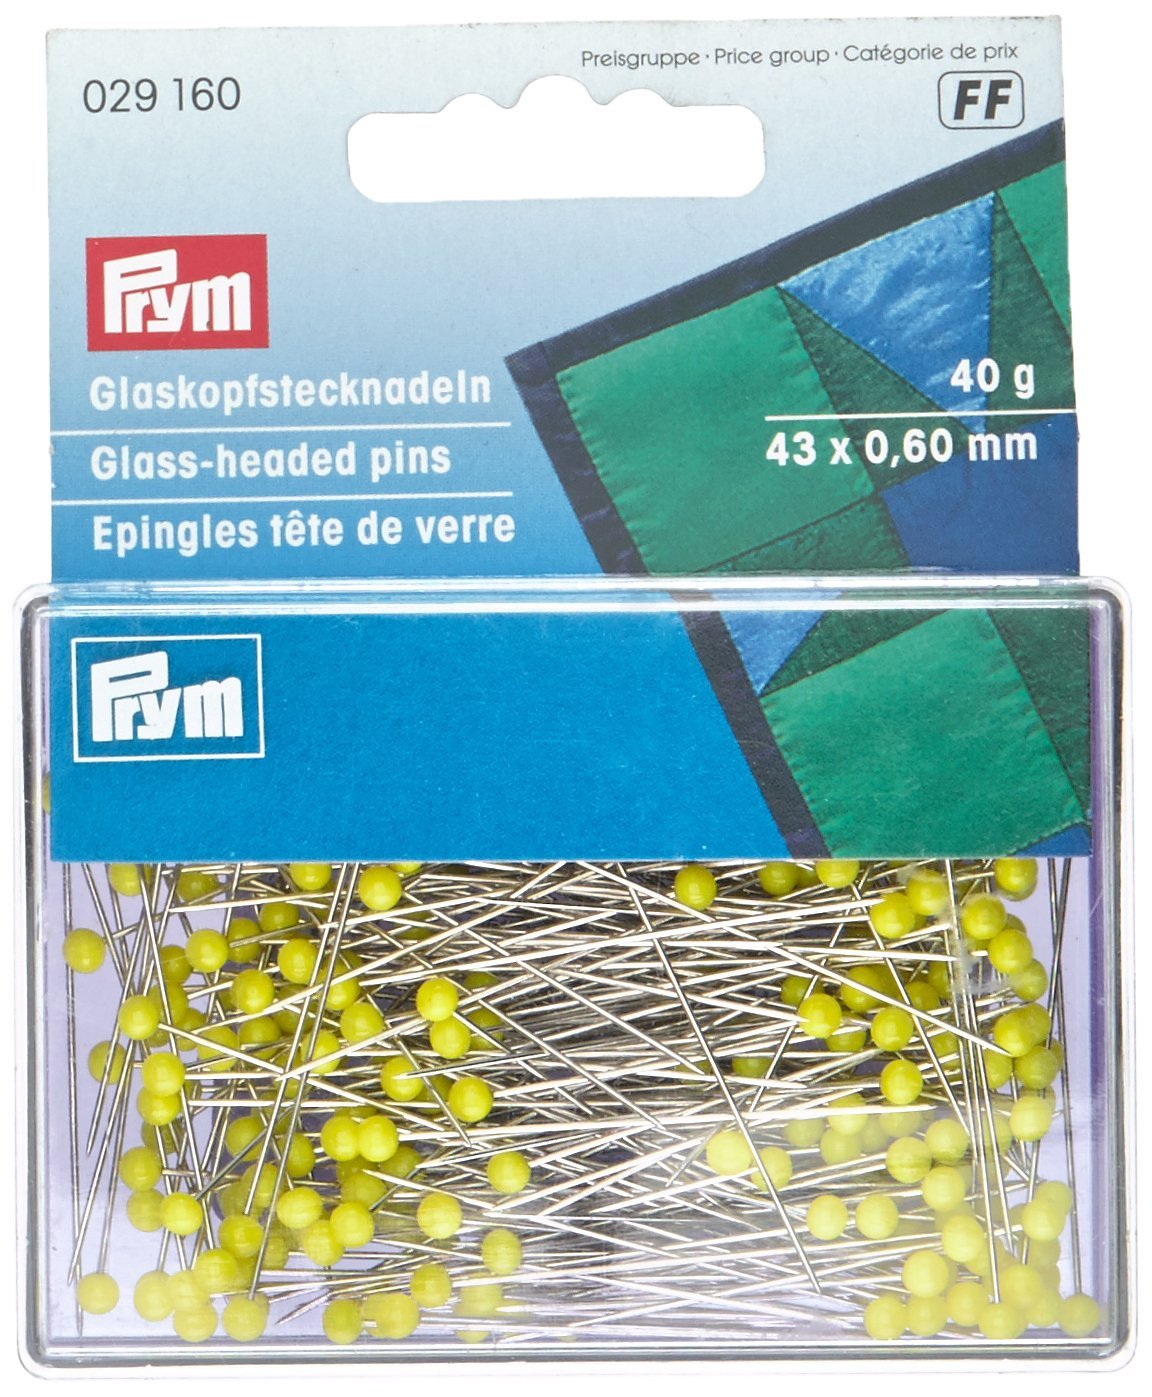 Prym - Alfileres (cabeza de cristal, 43 x 0,60 mm), color amarillo PRYM_029160-1